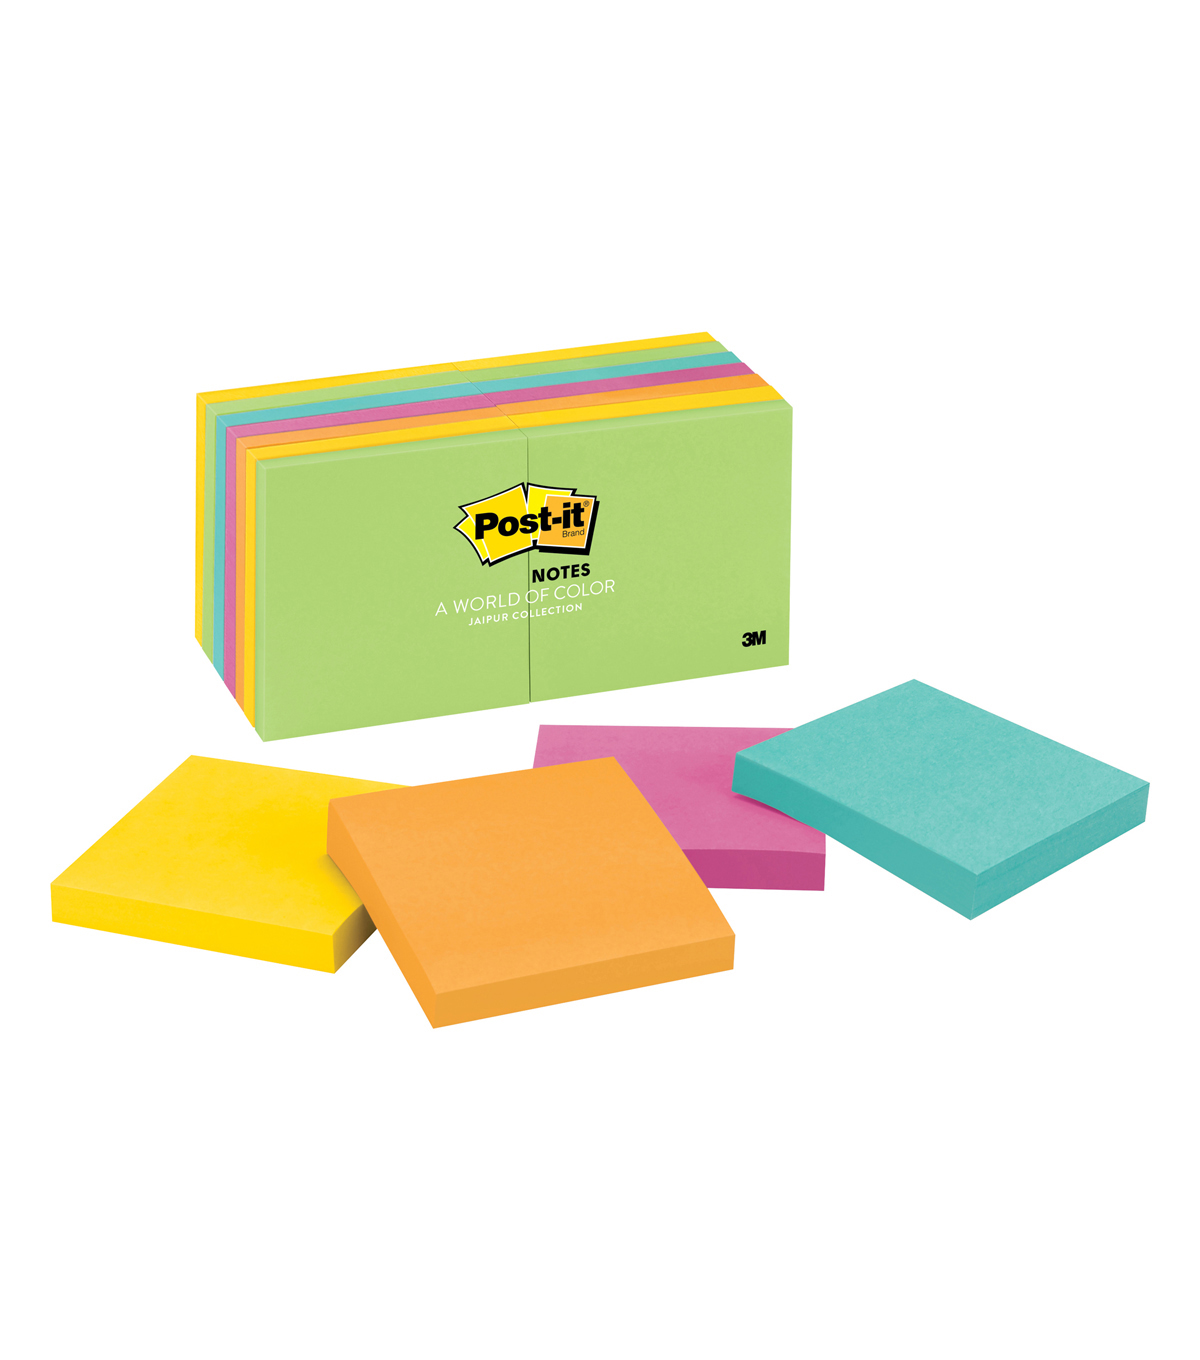 Post-it Notes, 3 in x 3 in, Jaipur Collection, 14 Pads